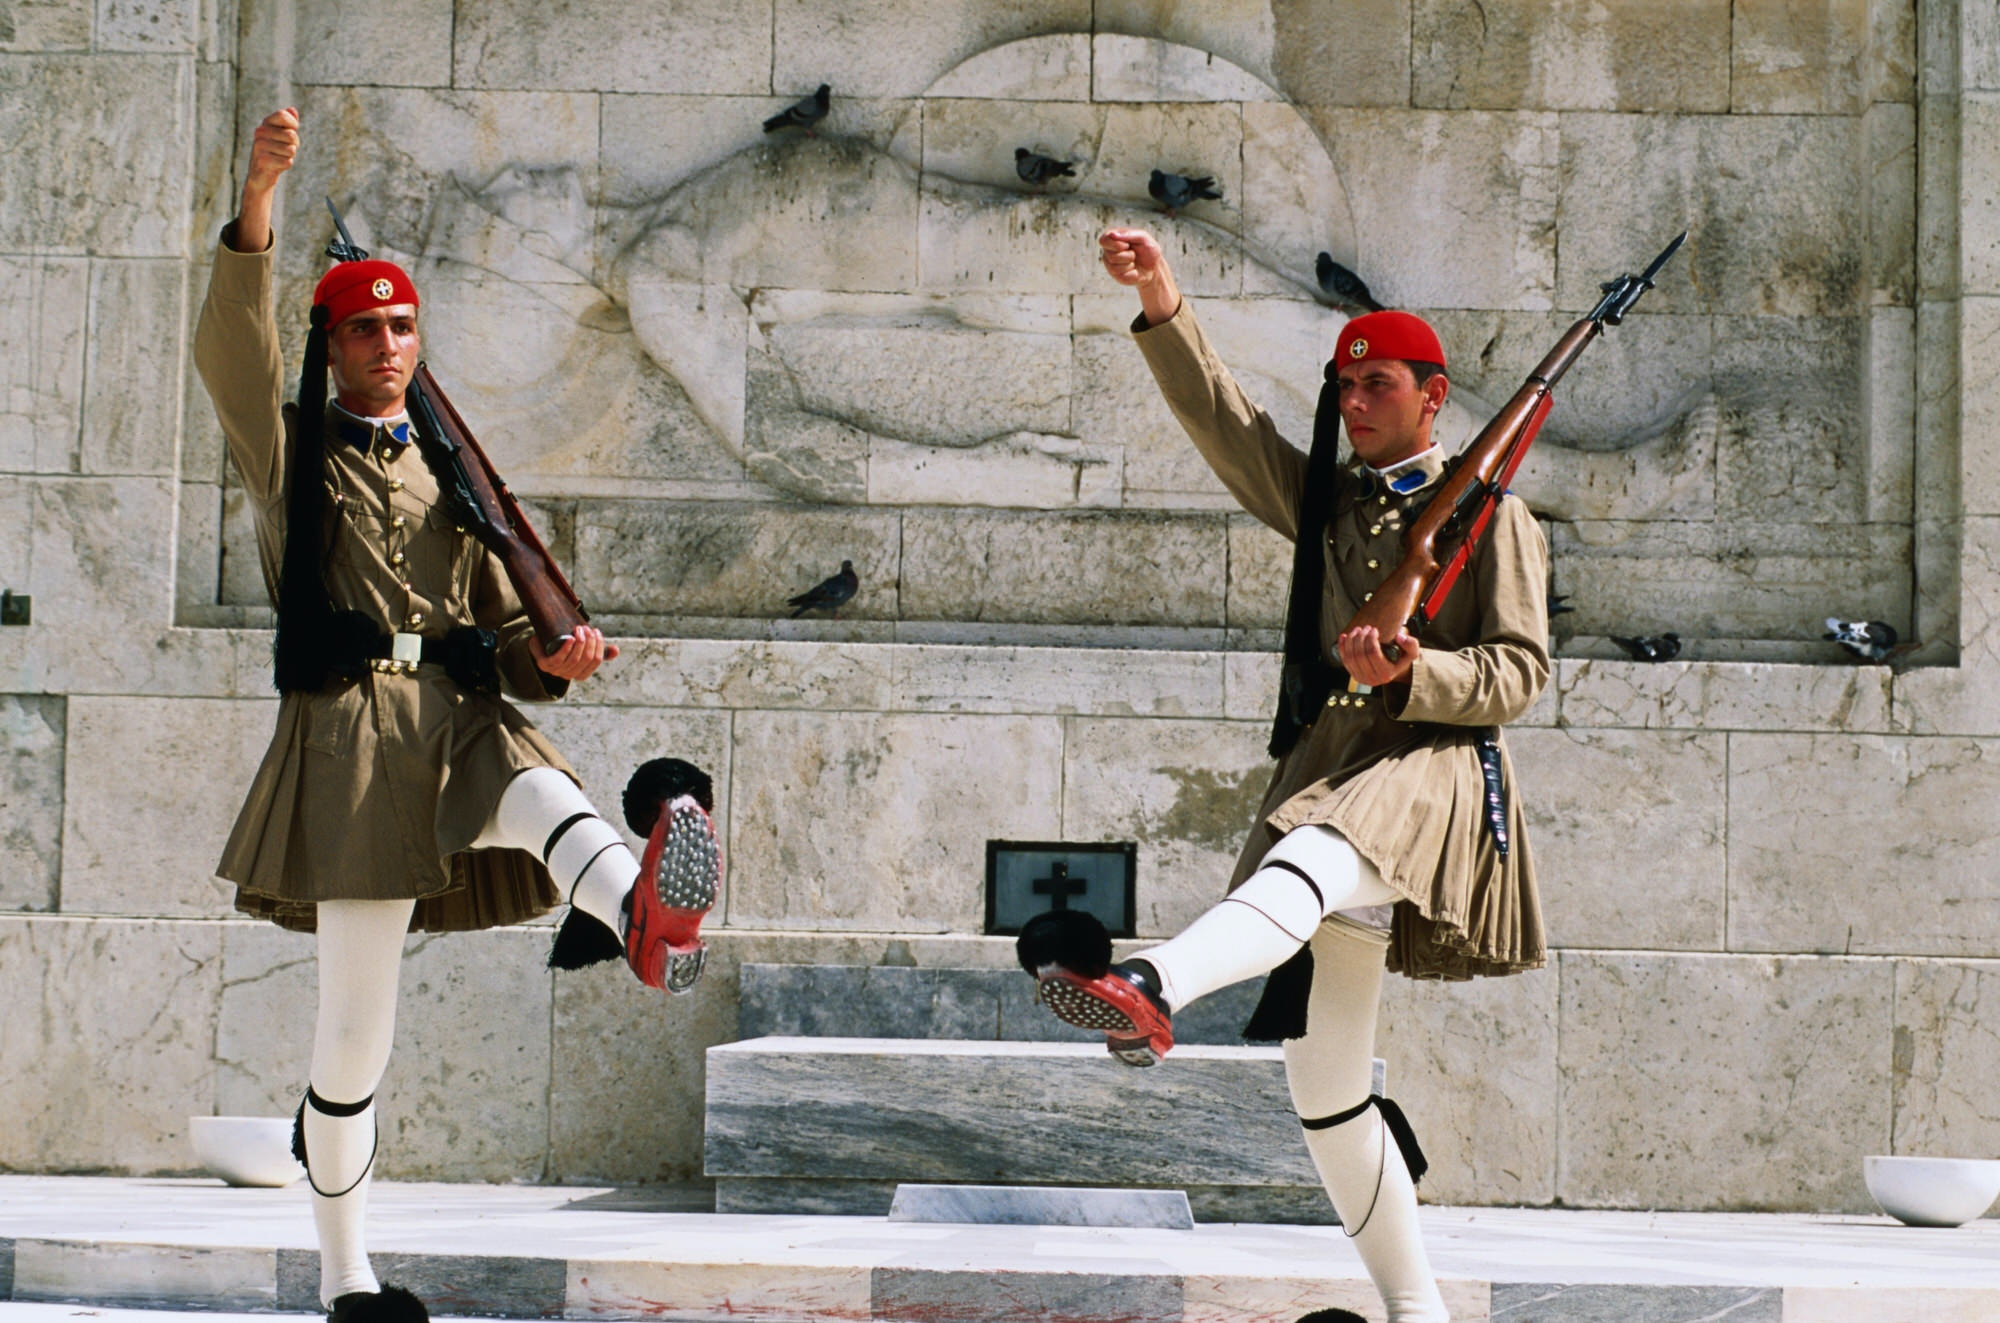 Evzones, Royal Guards, performing changing of the guard in front of the Parliament Building in Athens